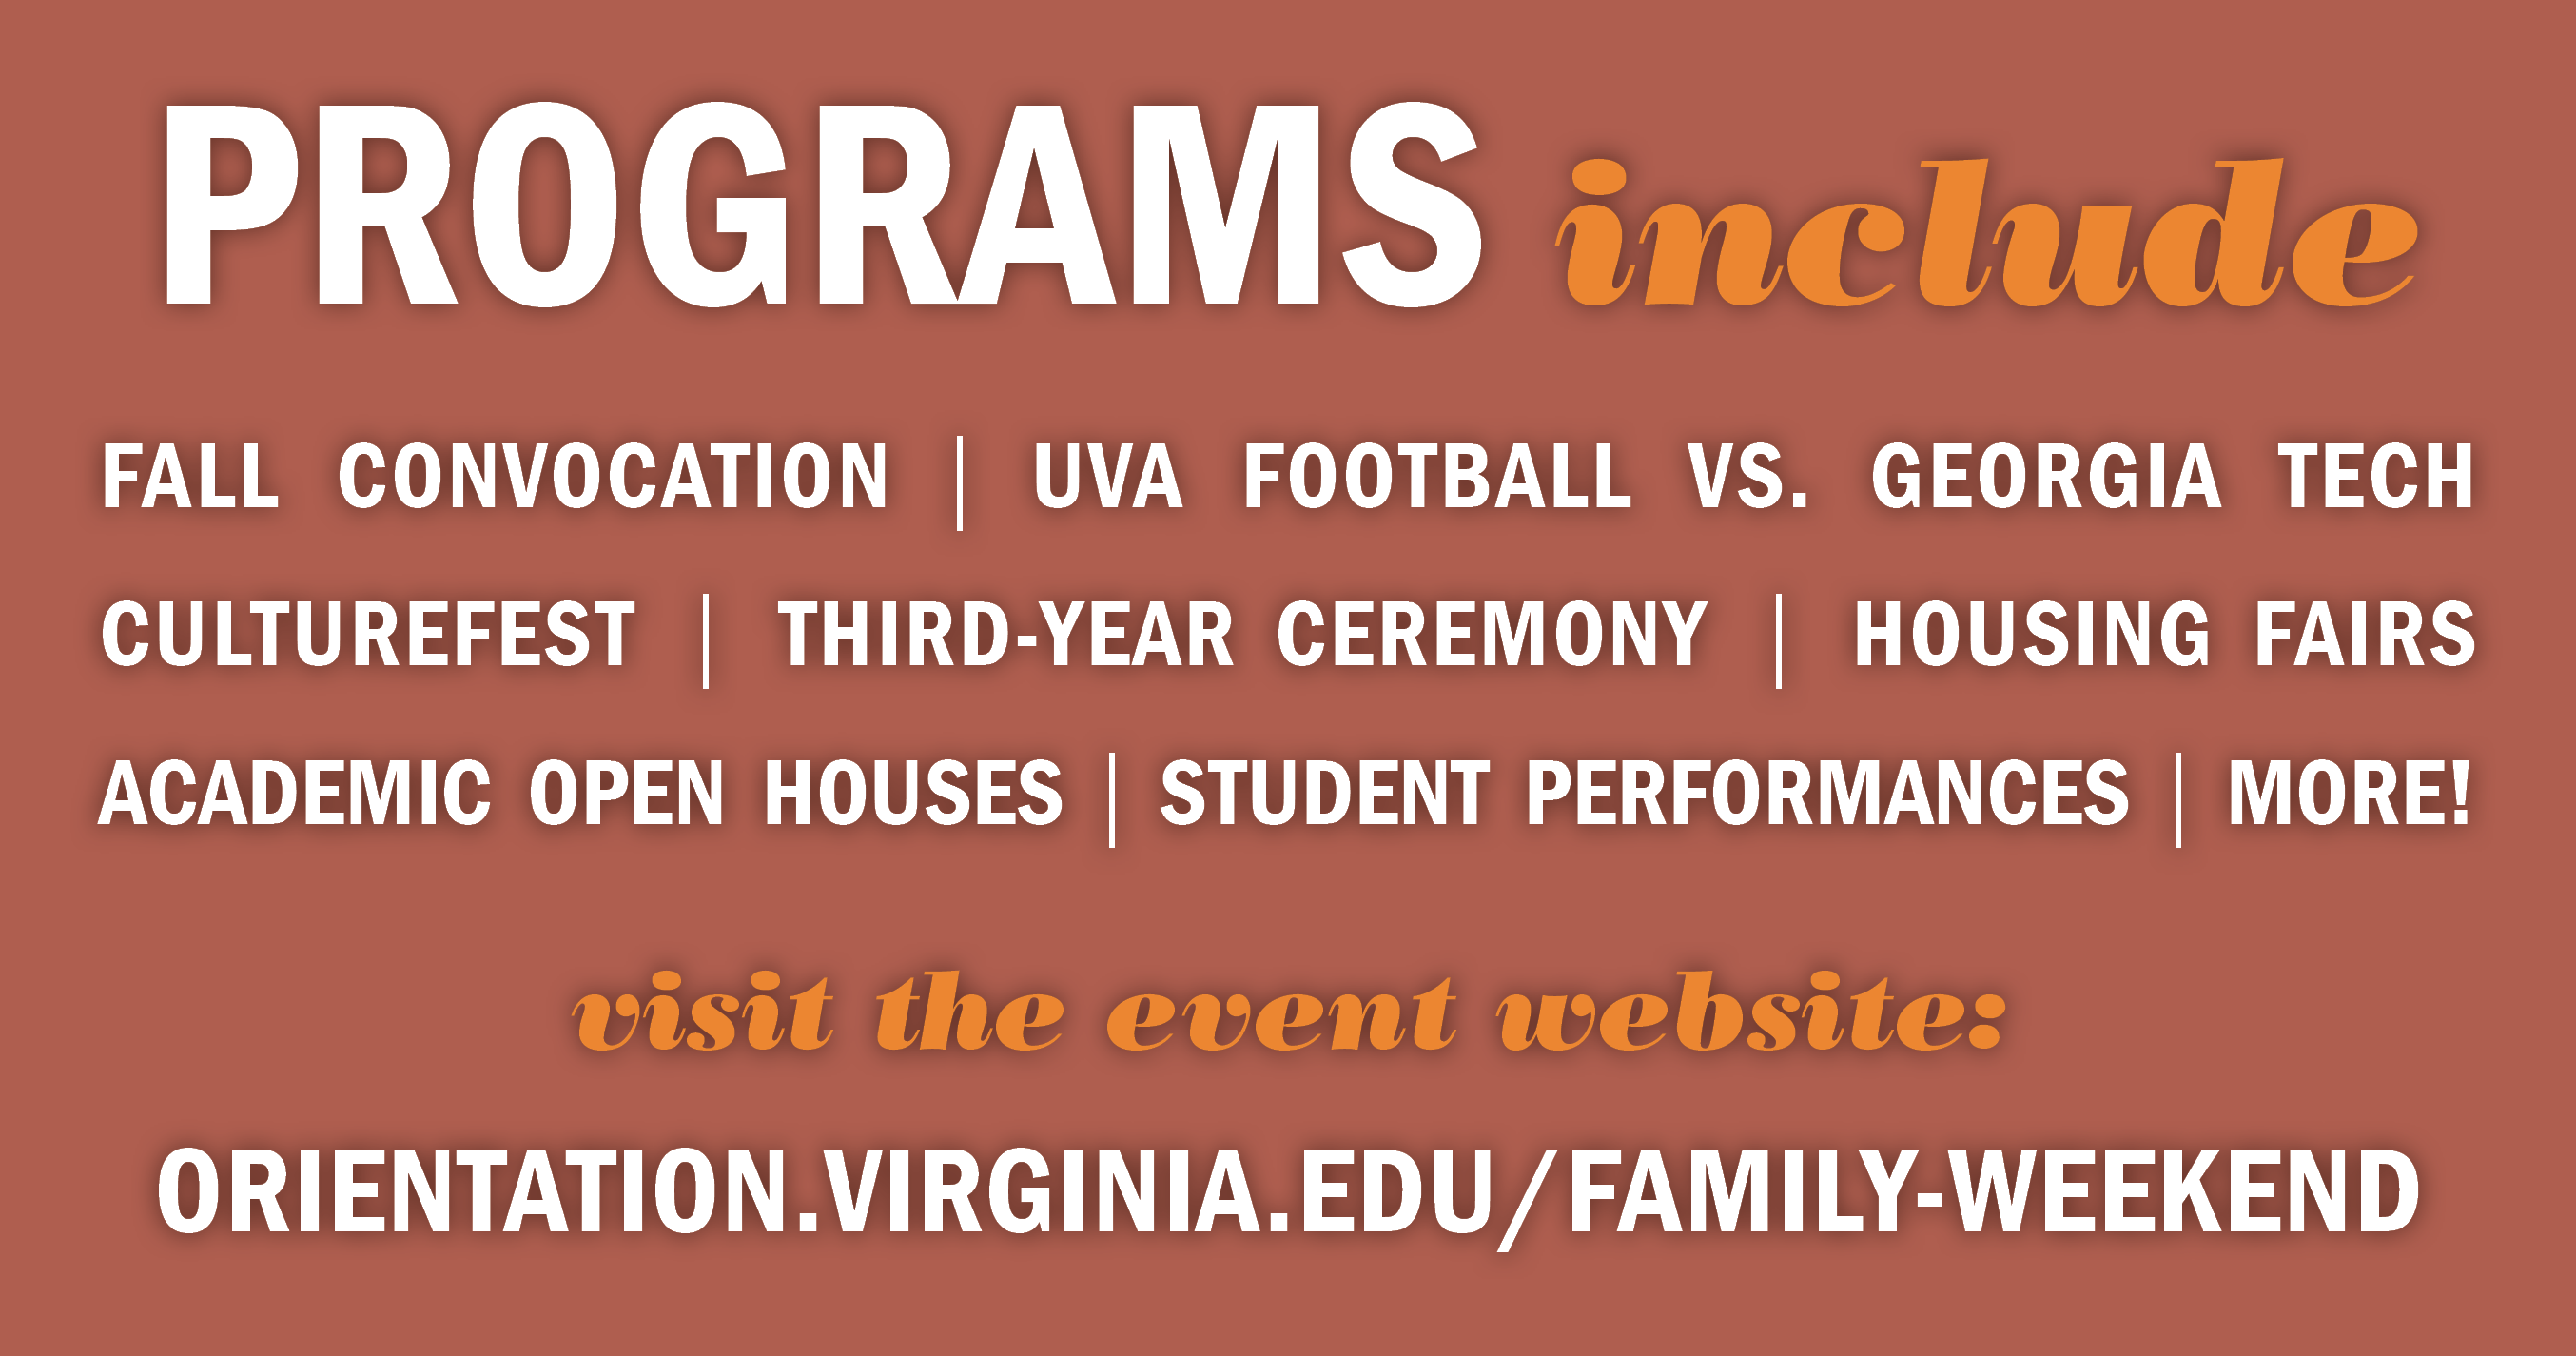 The Family Weekend schedule includes Fall Convocation, UVA Football vs. Georgie Tech, CultureFest, the Third-Year Ceremony, Housing Fairs, Academic Open Houses, Student Performances, and more! Visit the event website at orientation.virginia.edu/family-weekend for more information.